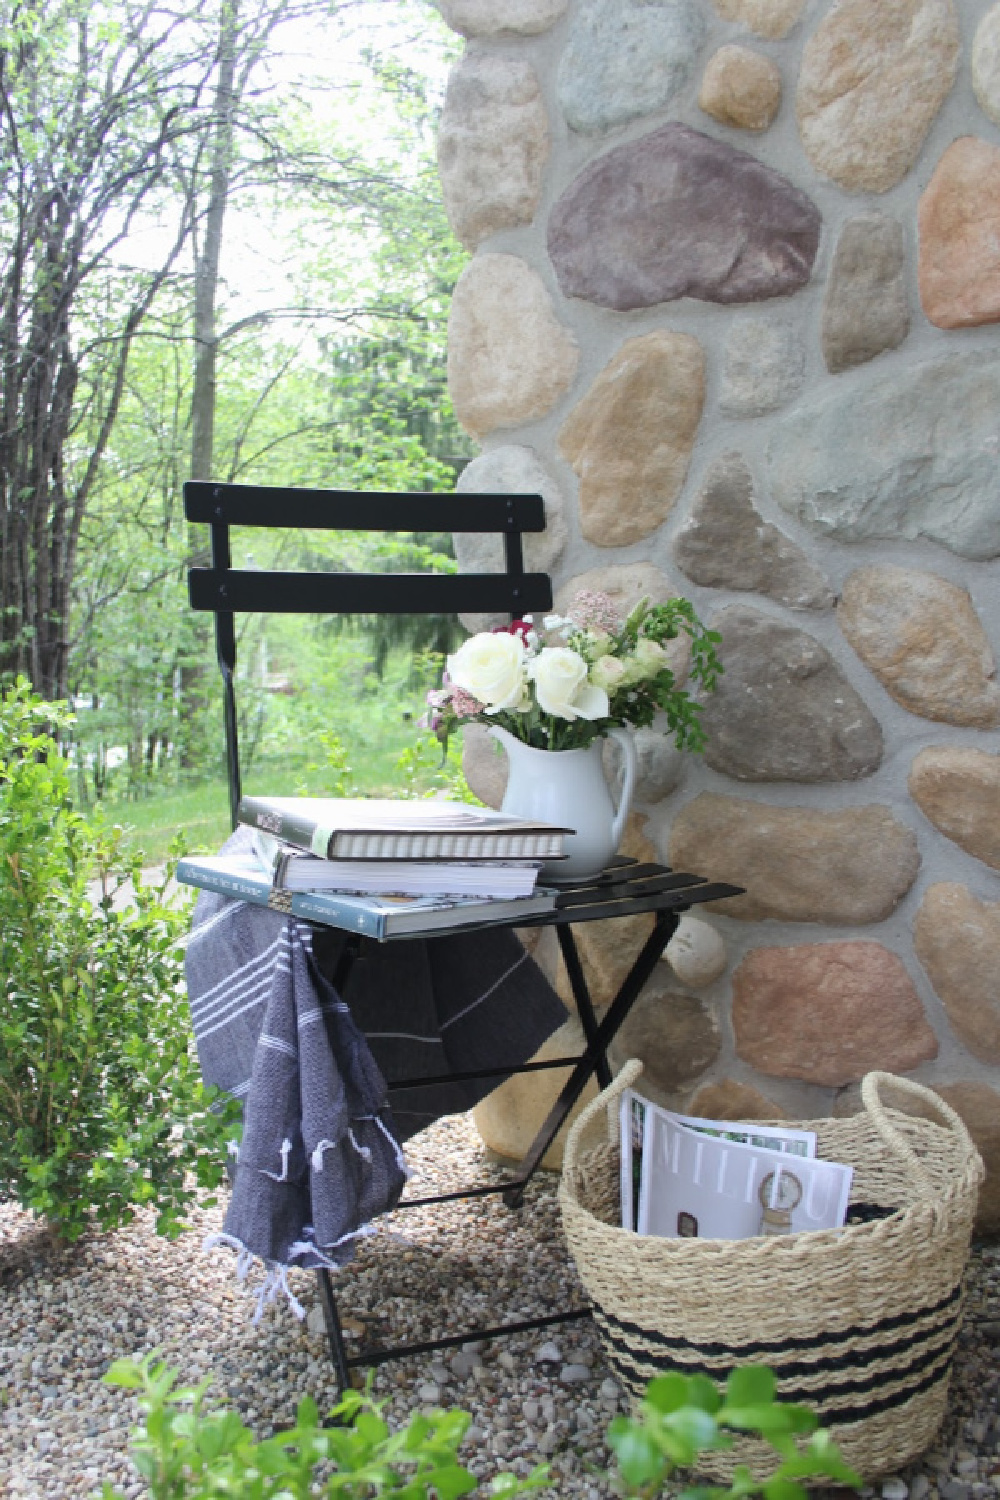 French bistro chair and stripe Turkish throw tucked in a corner of my garden to invite relaxation and reading (cookbooks are my idea of relaxation!). #hellolovelystudio #frenchcountry #bistrochair #turkishthrow #seagrassbasket #turkishtowel #outdooroasis #romanticgarden #outdoordecor #bistrochairs